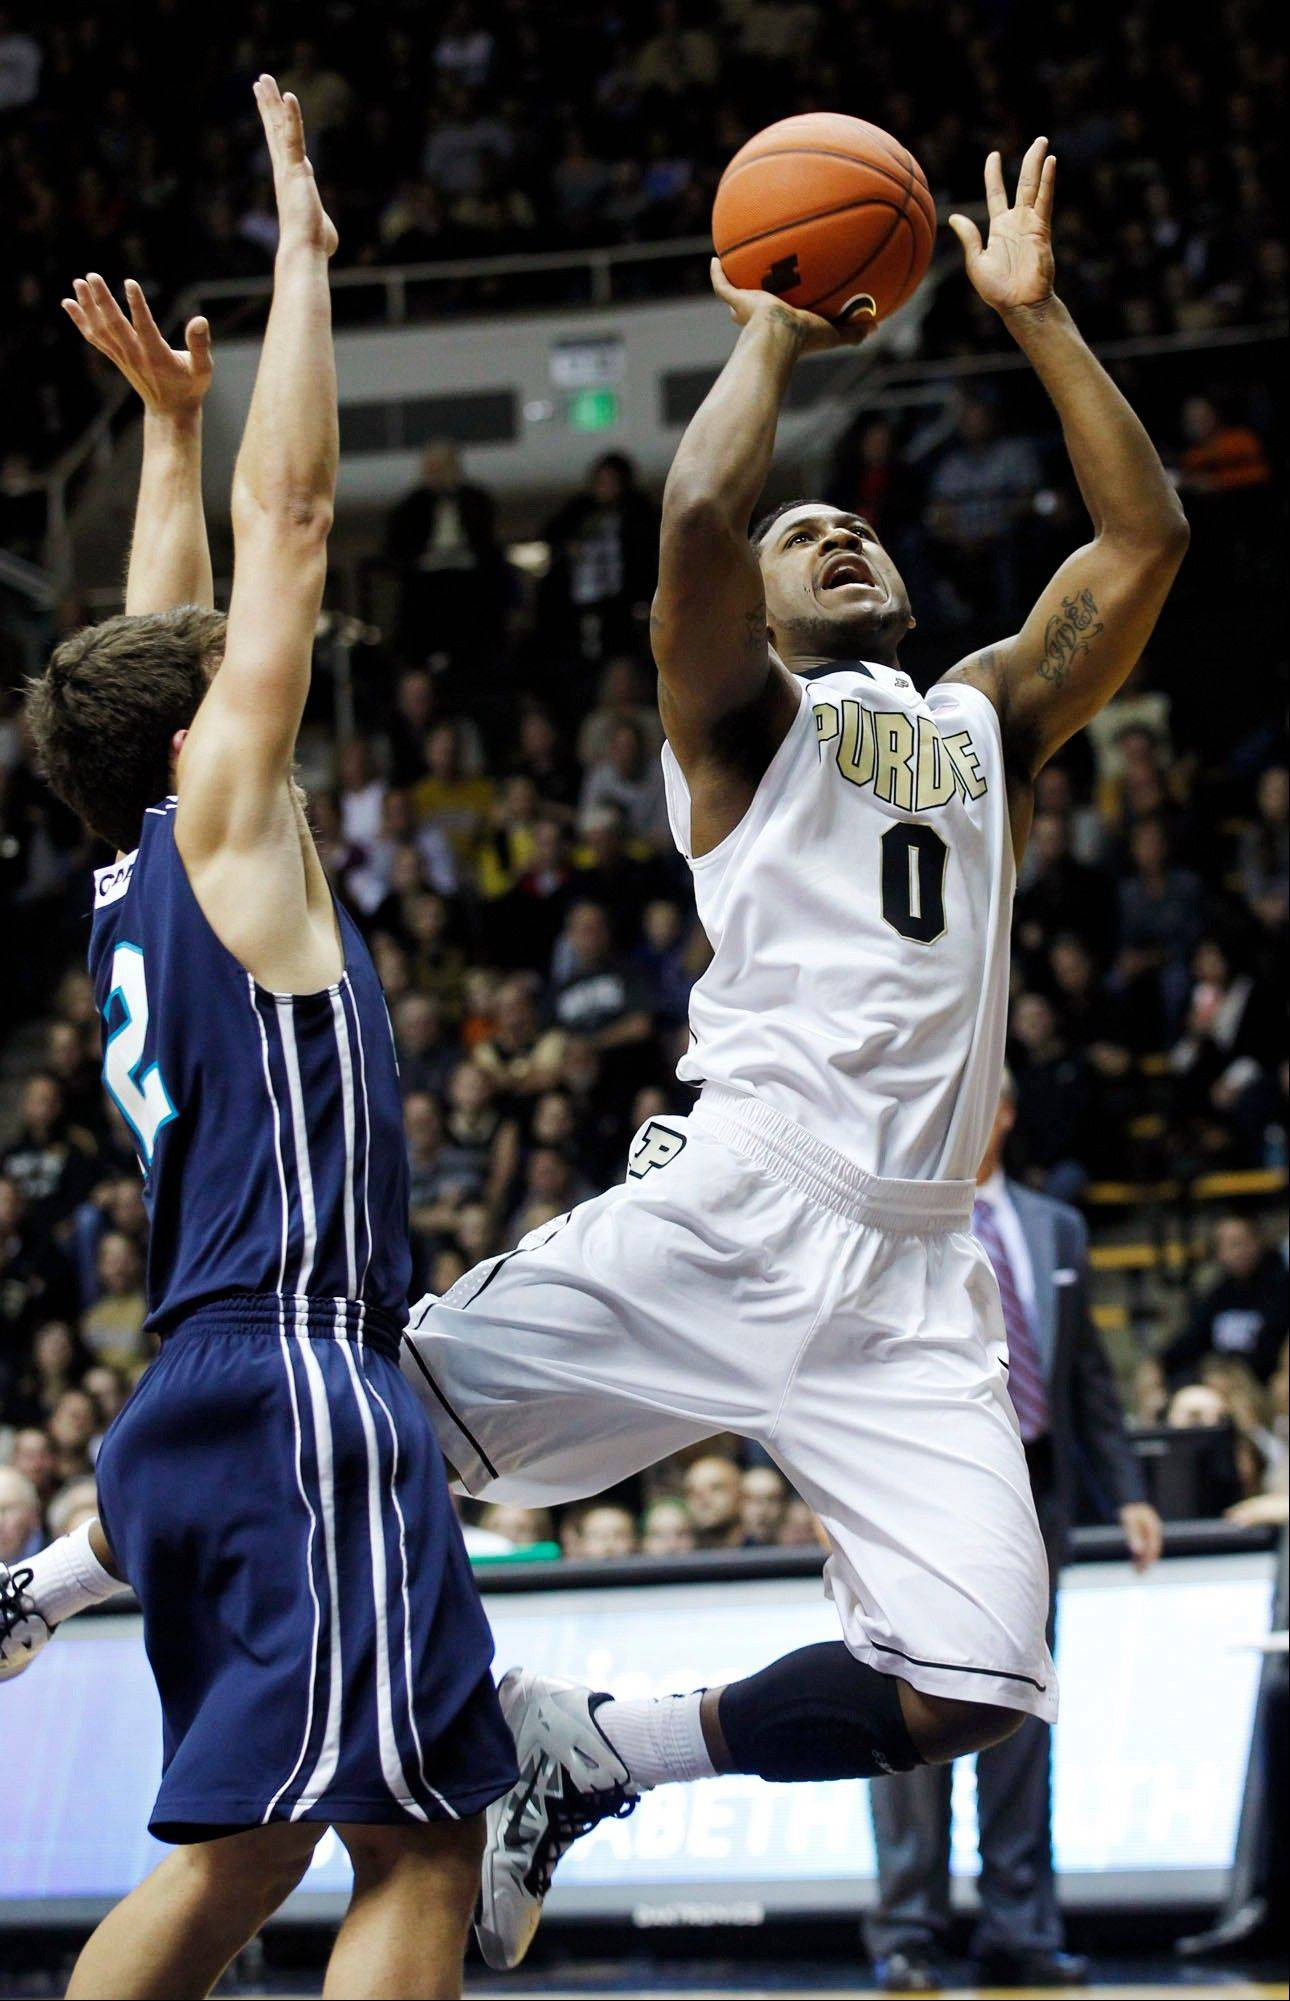 Purdue's Terone Johnson shoots while being fouled by North Carolina-Wilmington's Tanner Milson during the first half of their game Wednesday in West Lafayette, Ind.